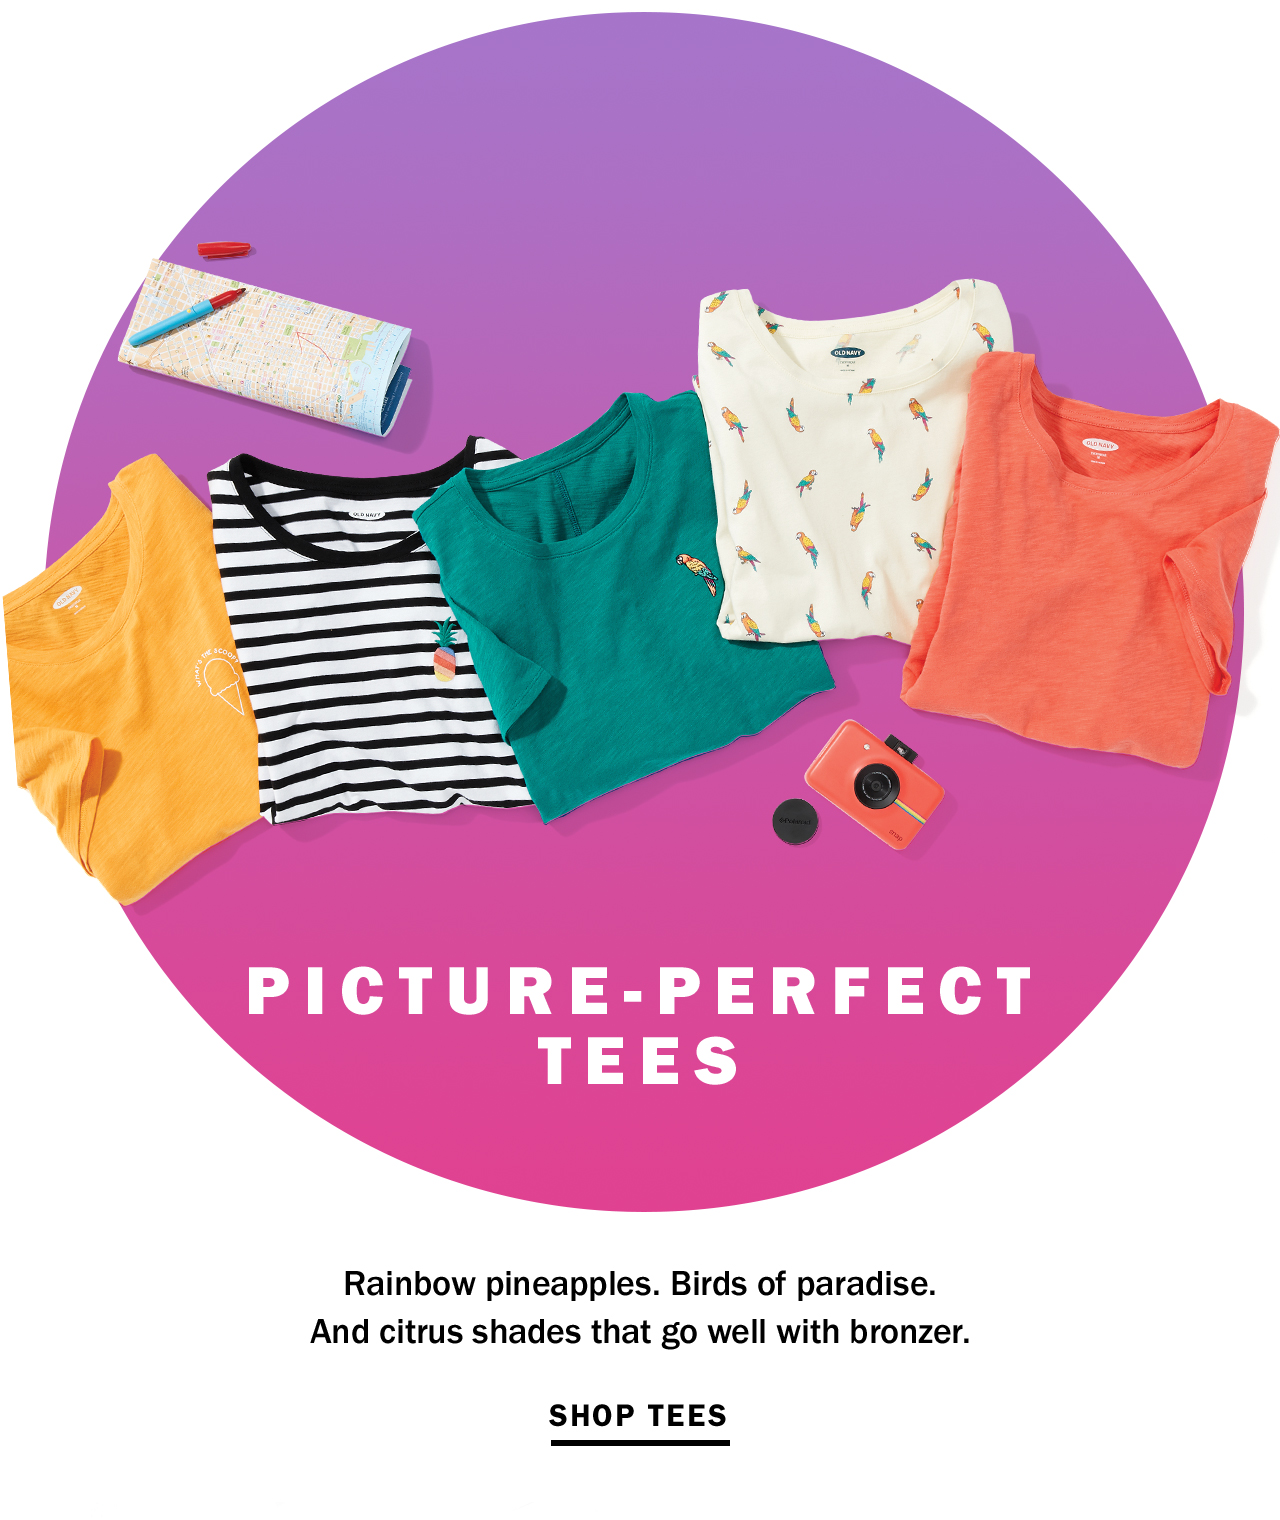 PICTURE-PERFECT TEES | SHOP TEES